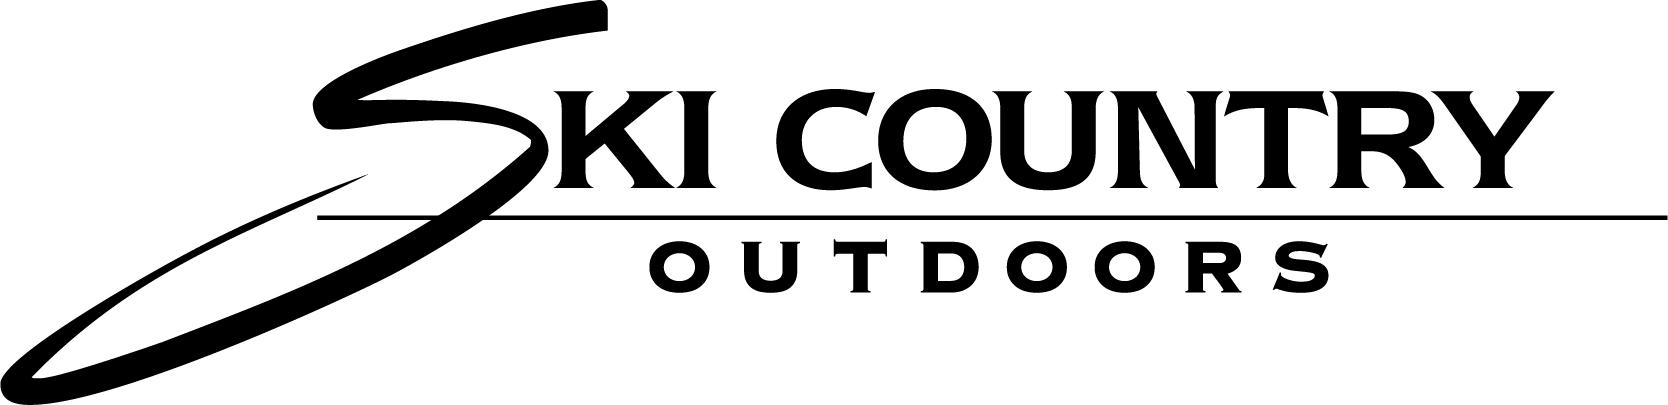 Ski Country Outdoors